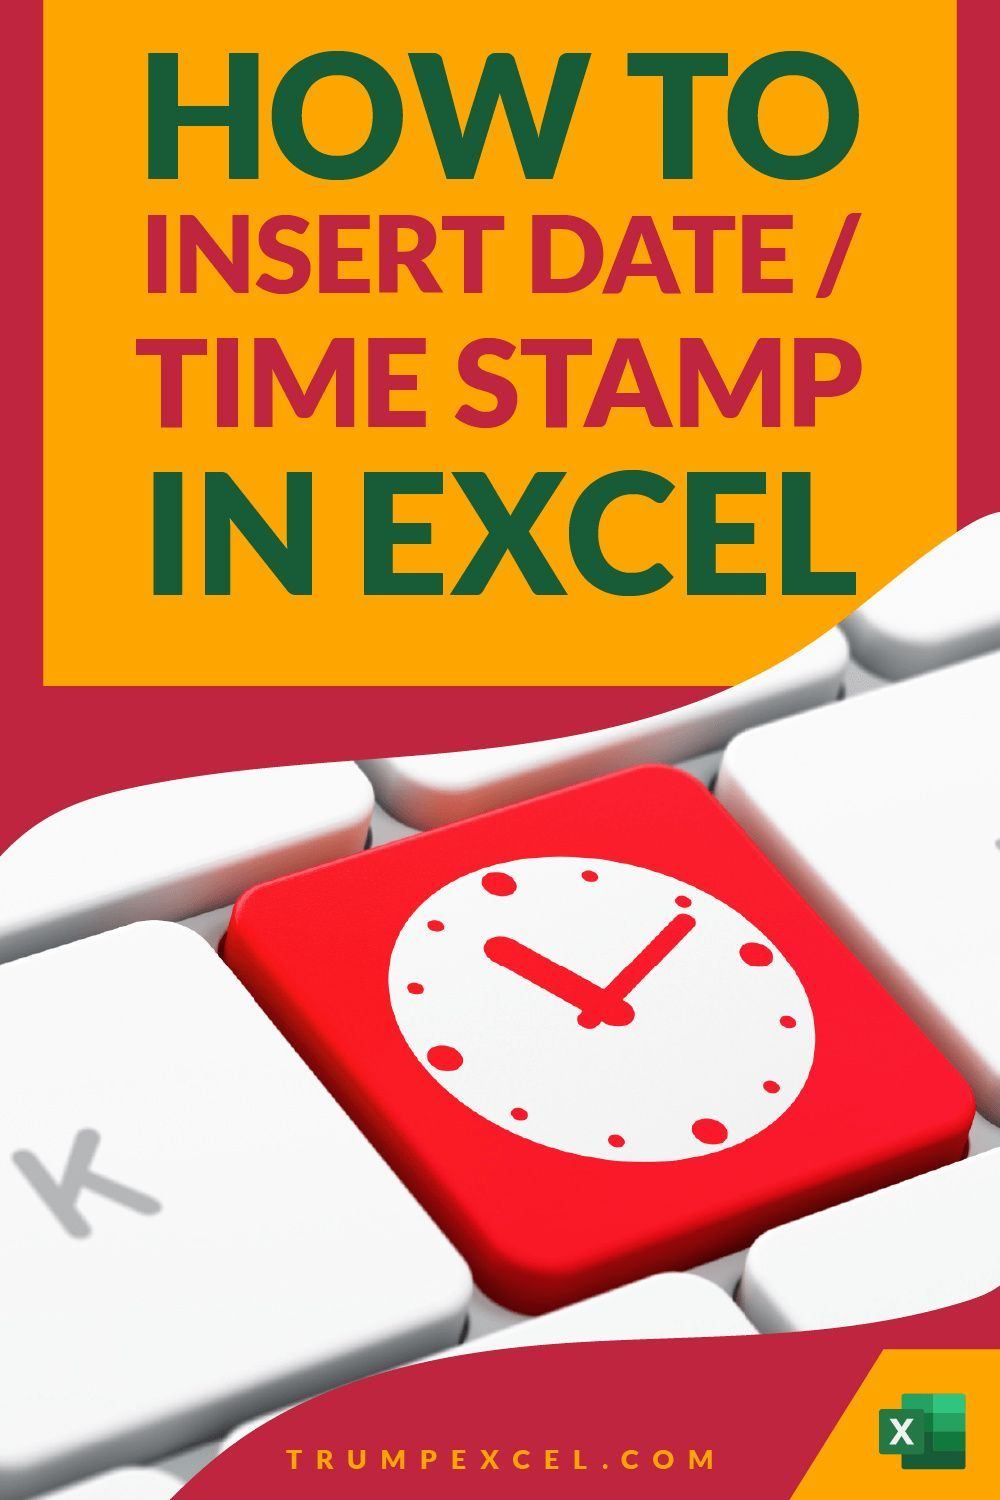 How to Quickly Insert Date and Timestamp in Excel